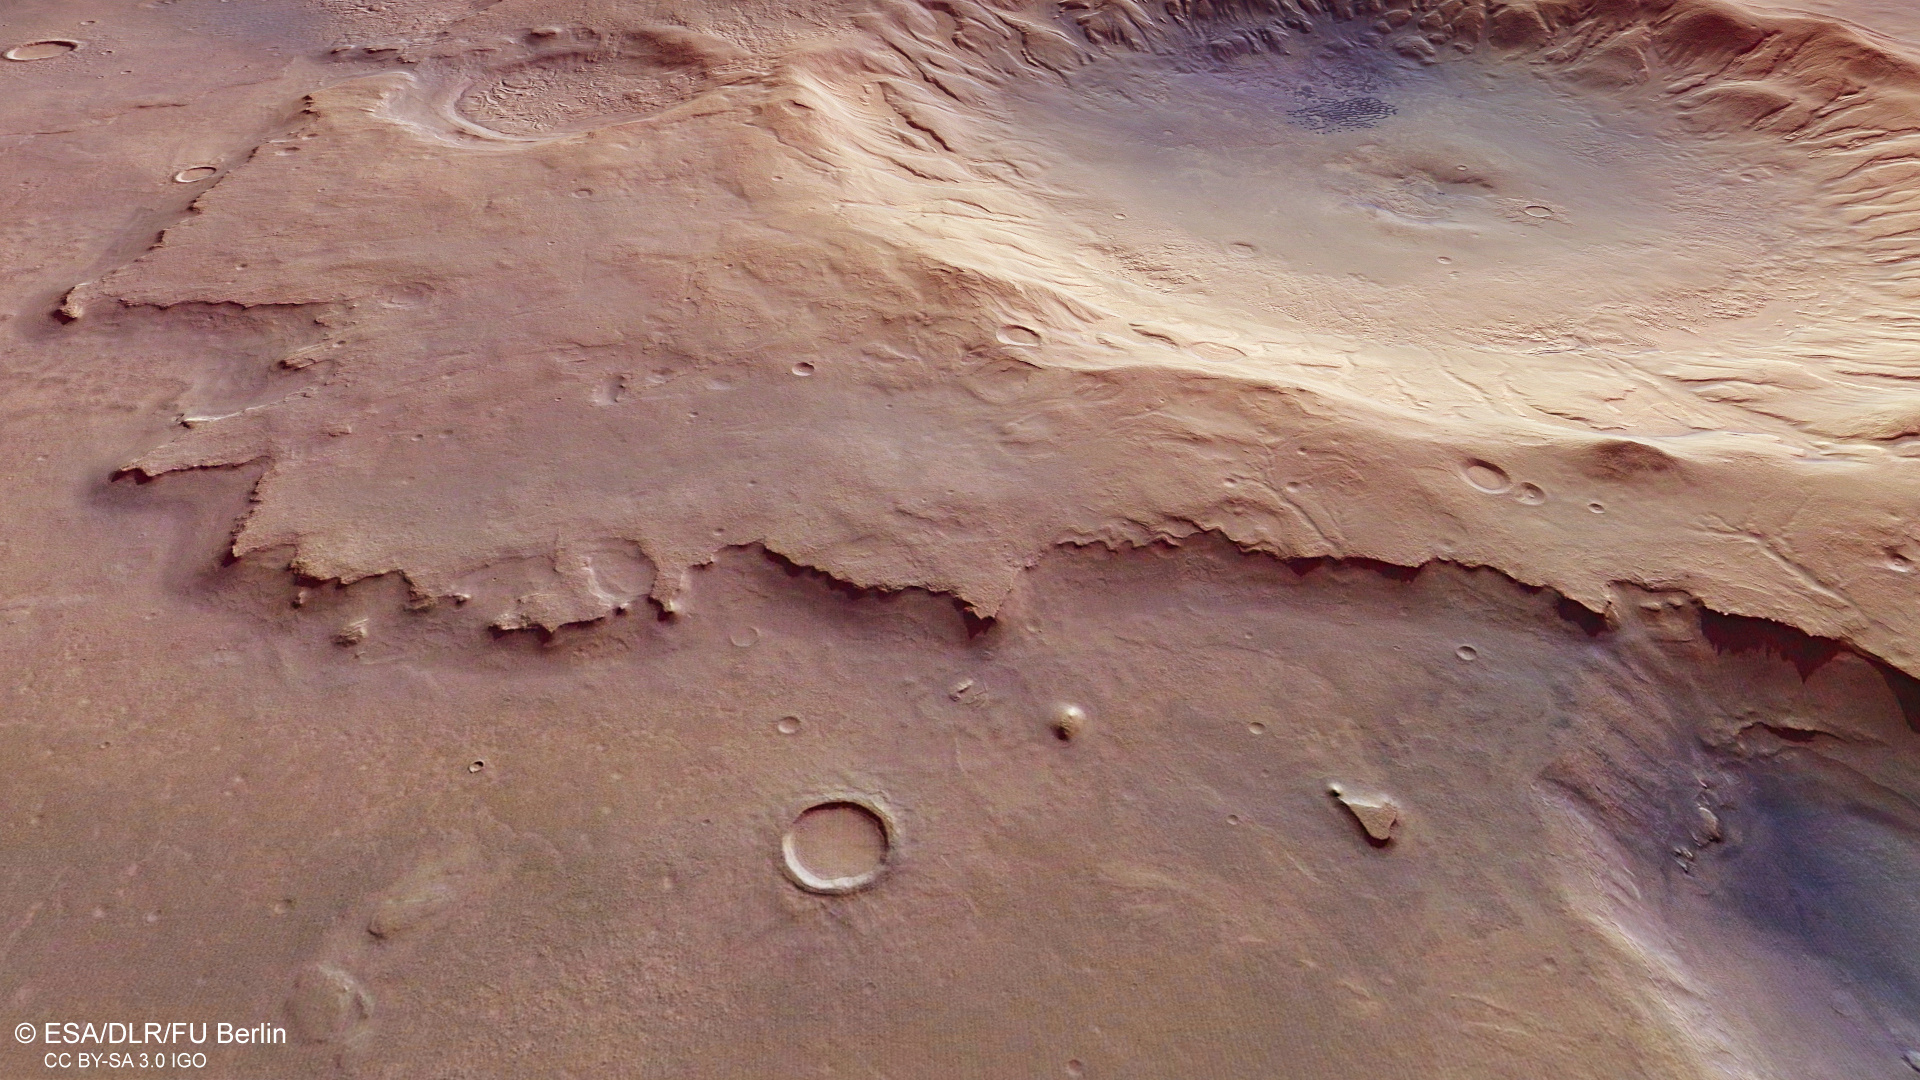 The unnamed Martian impact crater to the upper right of this image from ESA's Mars Express spacecraft is around 50 kilometres (30 miles) in diameter. Click the image for a full-size version. Image credit: ESA/DLR/FU Berlin, CC BY-SA 3.0 IGO.